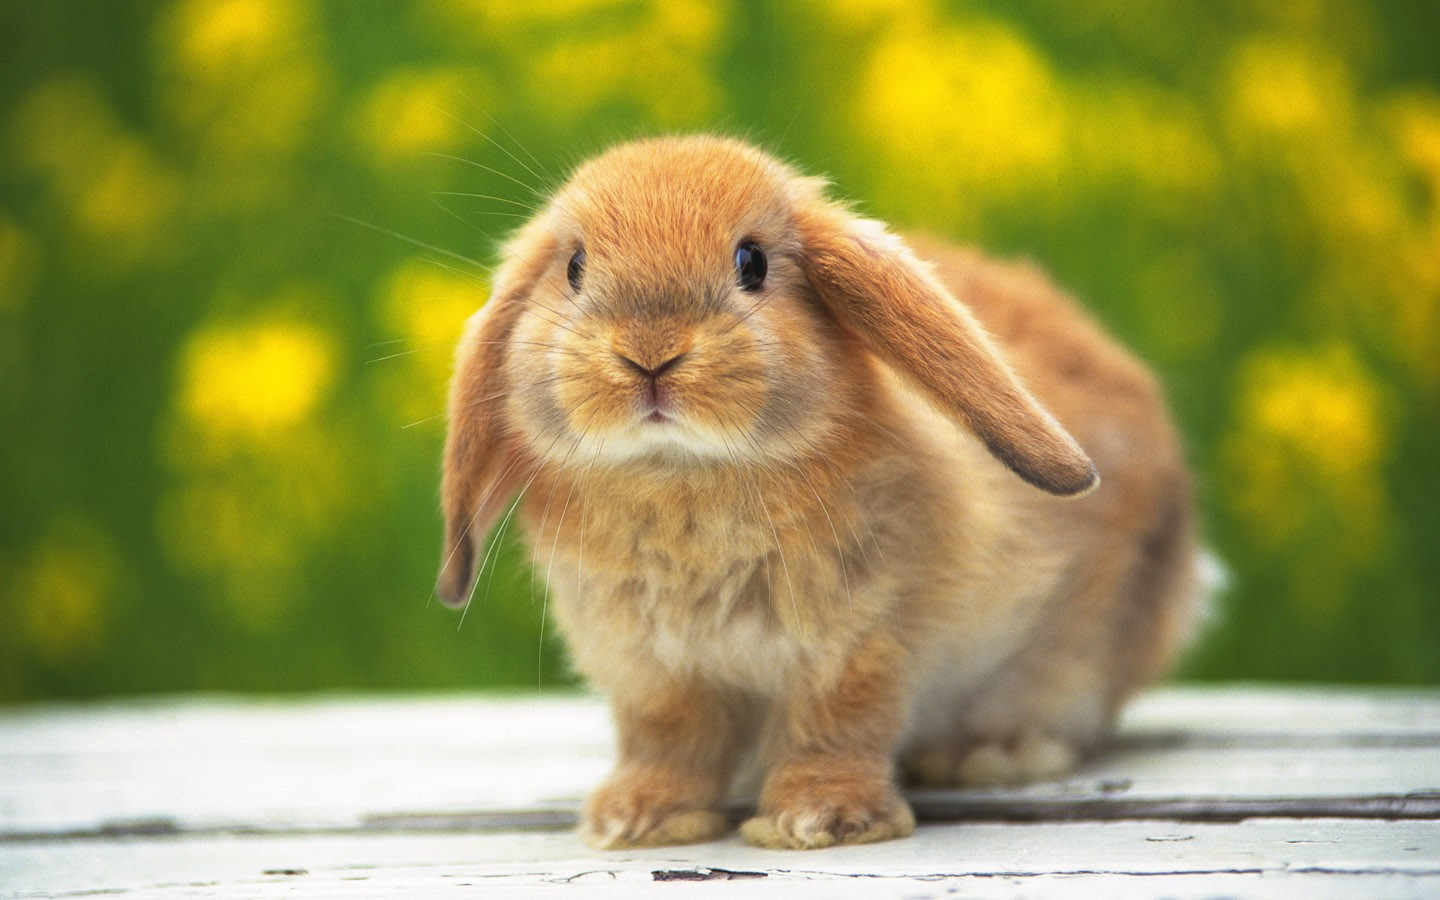 Funny and Cute Rabbits Wallpaper My image 1440x900